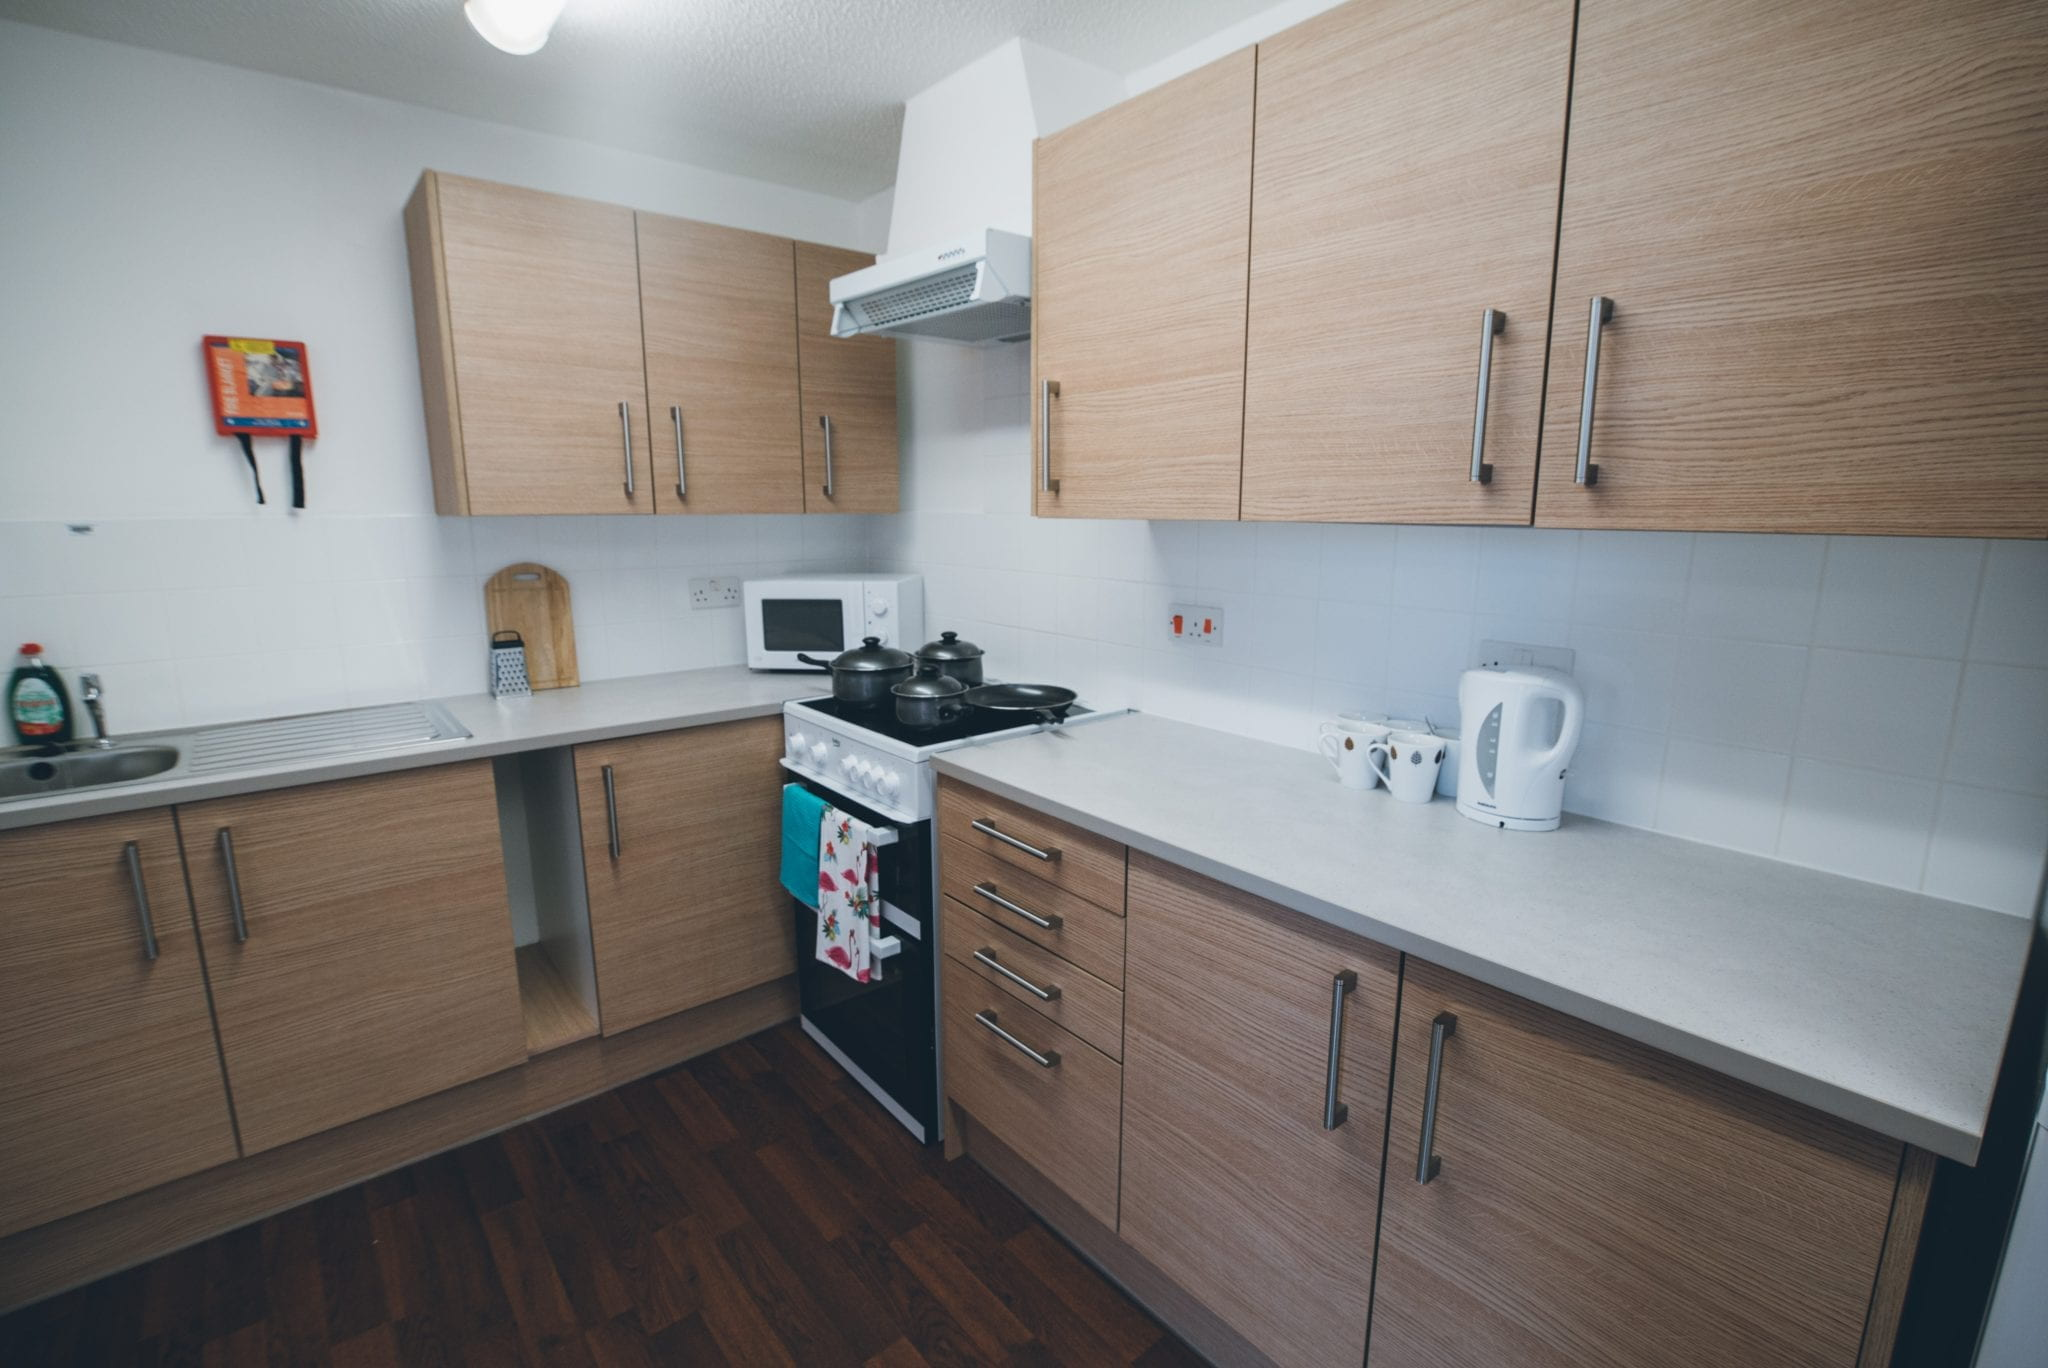 An example Lincoln Courts kitchen showing dining table & chairs, kitchen worktops and cupboards.